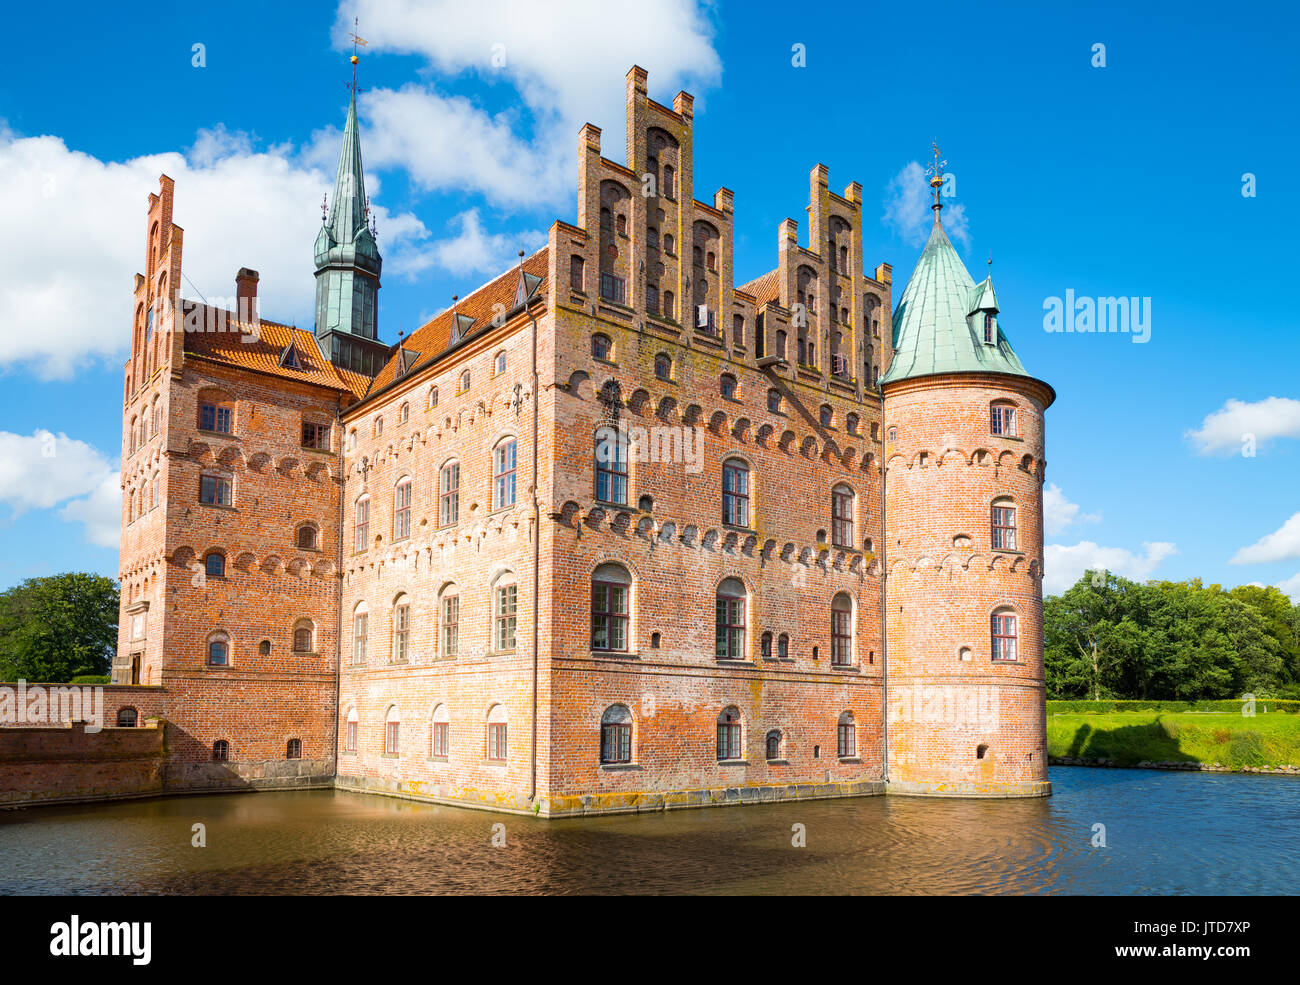 Kvaerndrup, Denmark, View of the Egeskov castle on the lake. - Stock Image